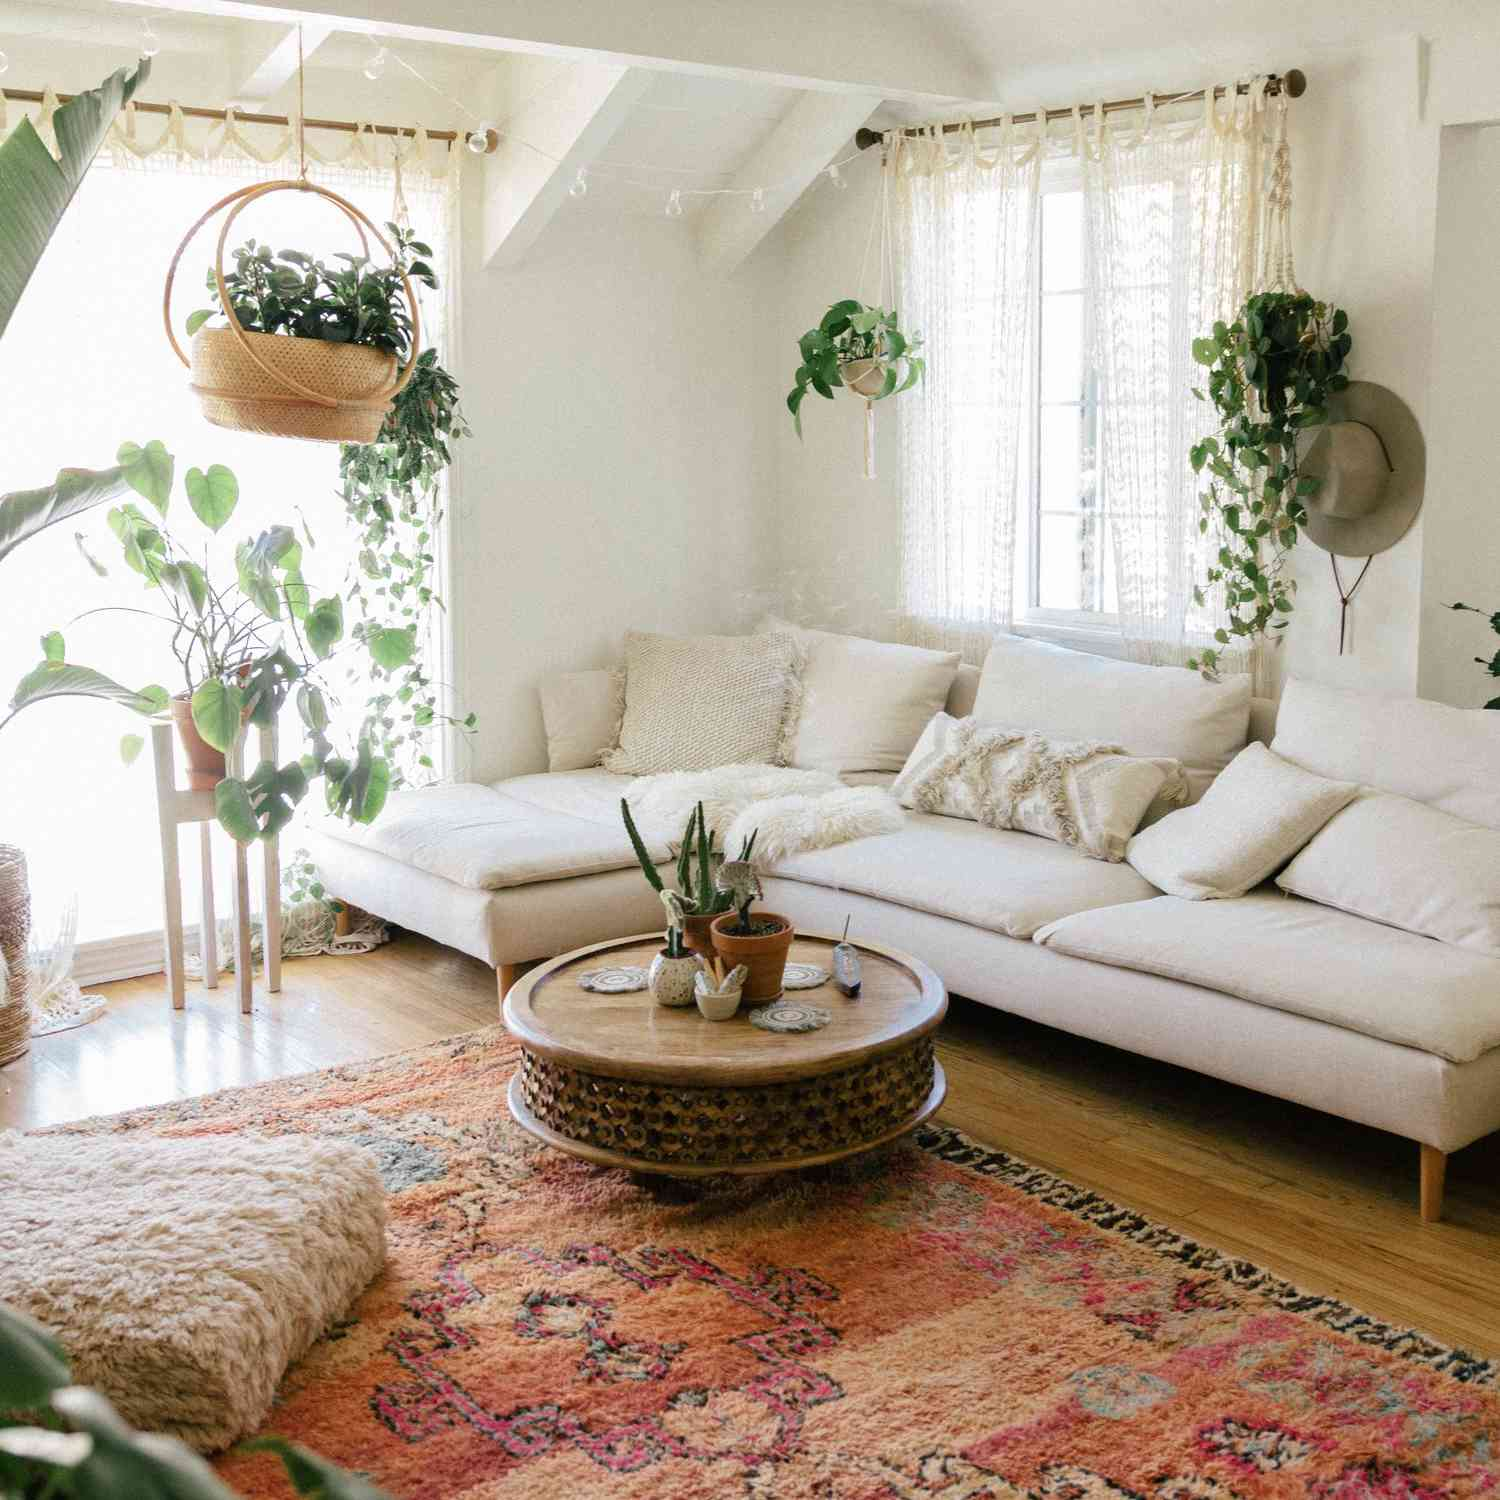 A room with a white couch and a printed rug